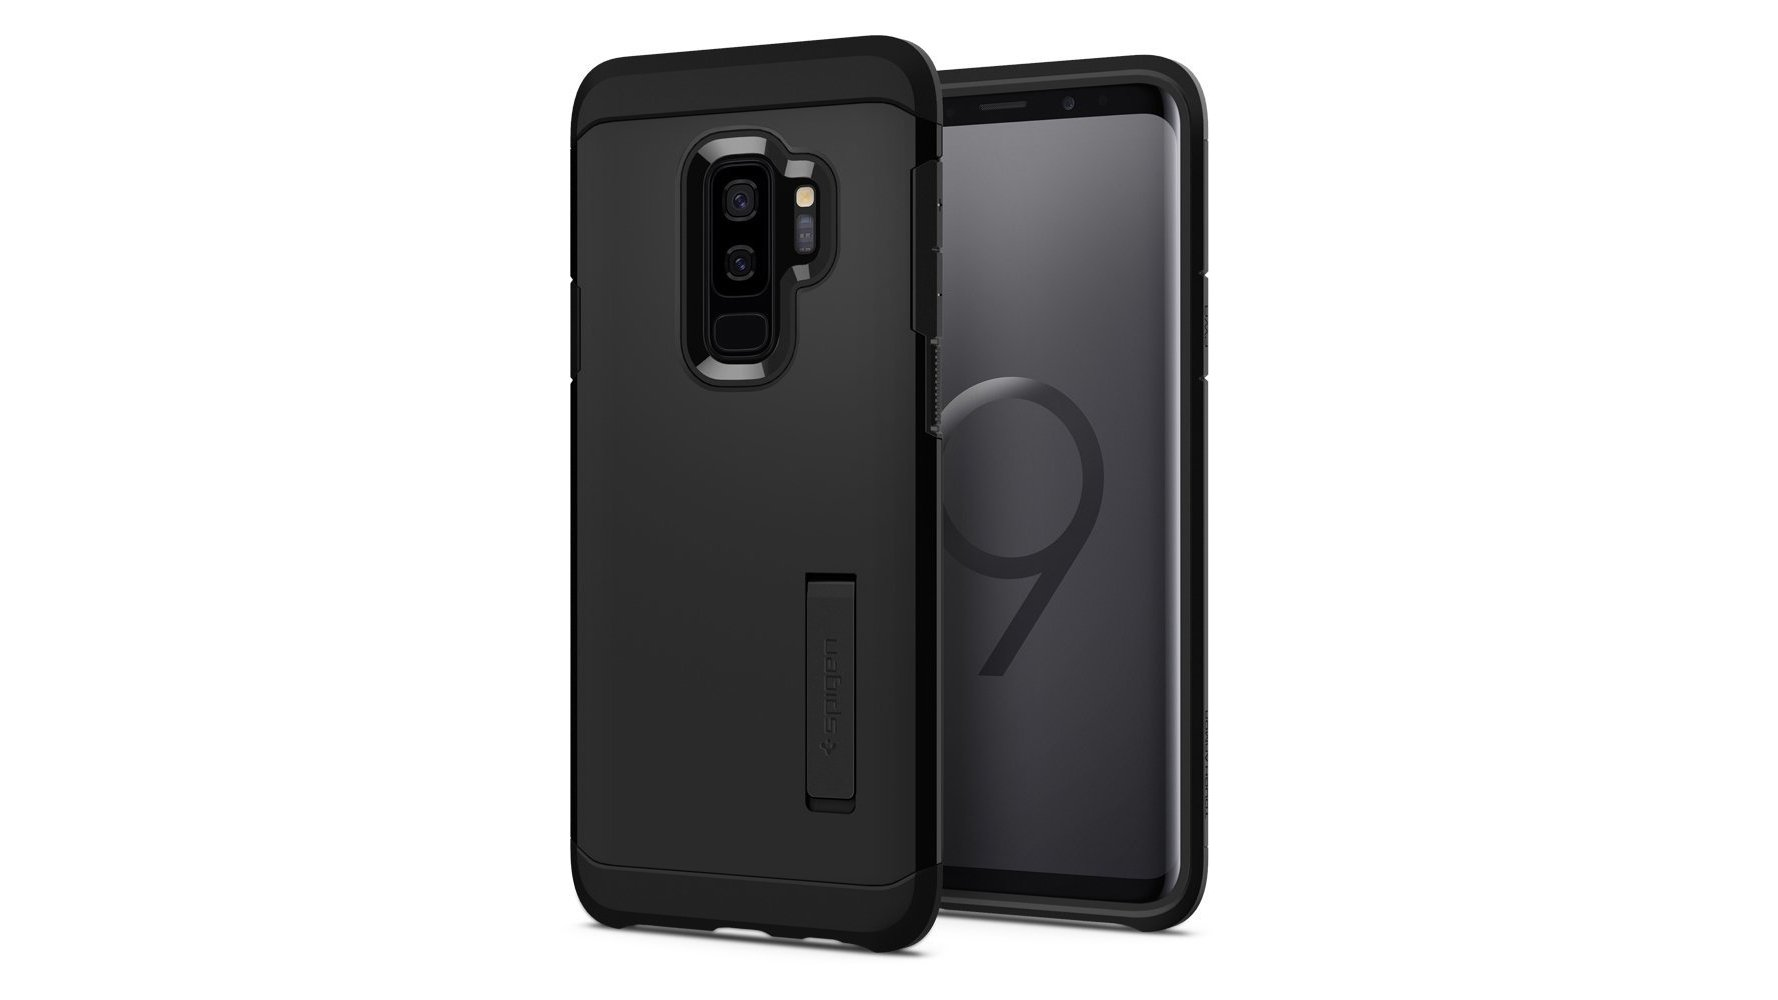 new concept 66497 490c0 Best Samsung Galaxy S9 cases: Protect your Galaxy S9 and Galaxy S9 ...